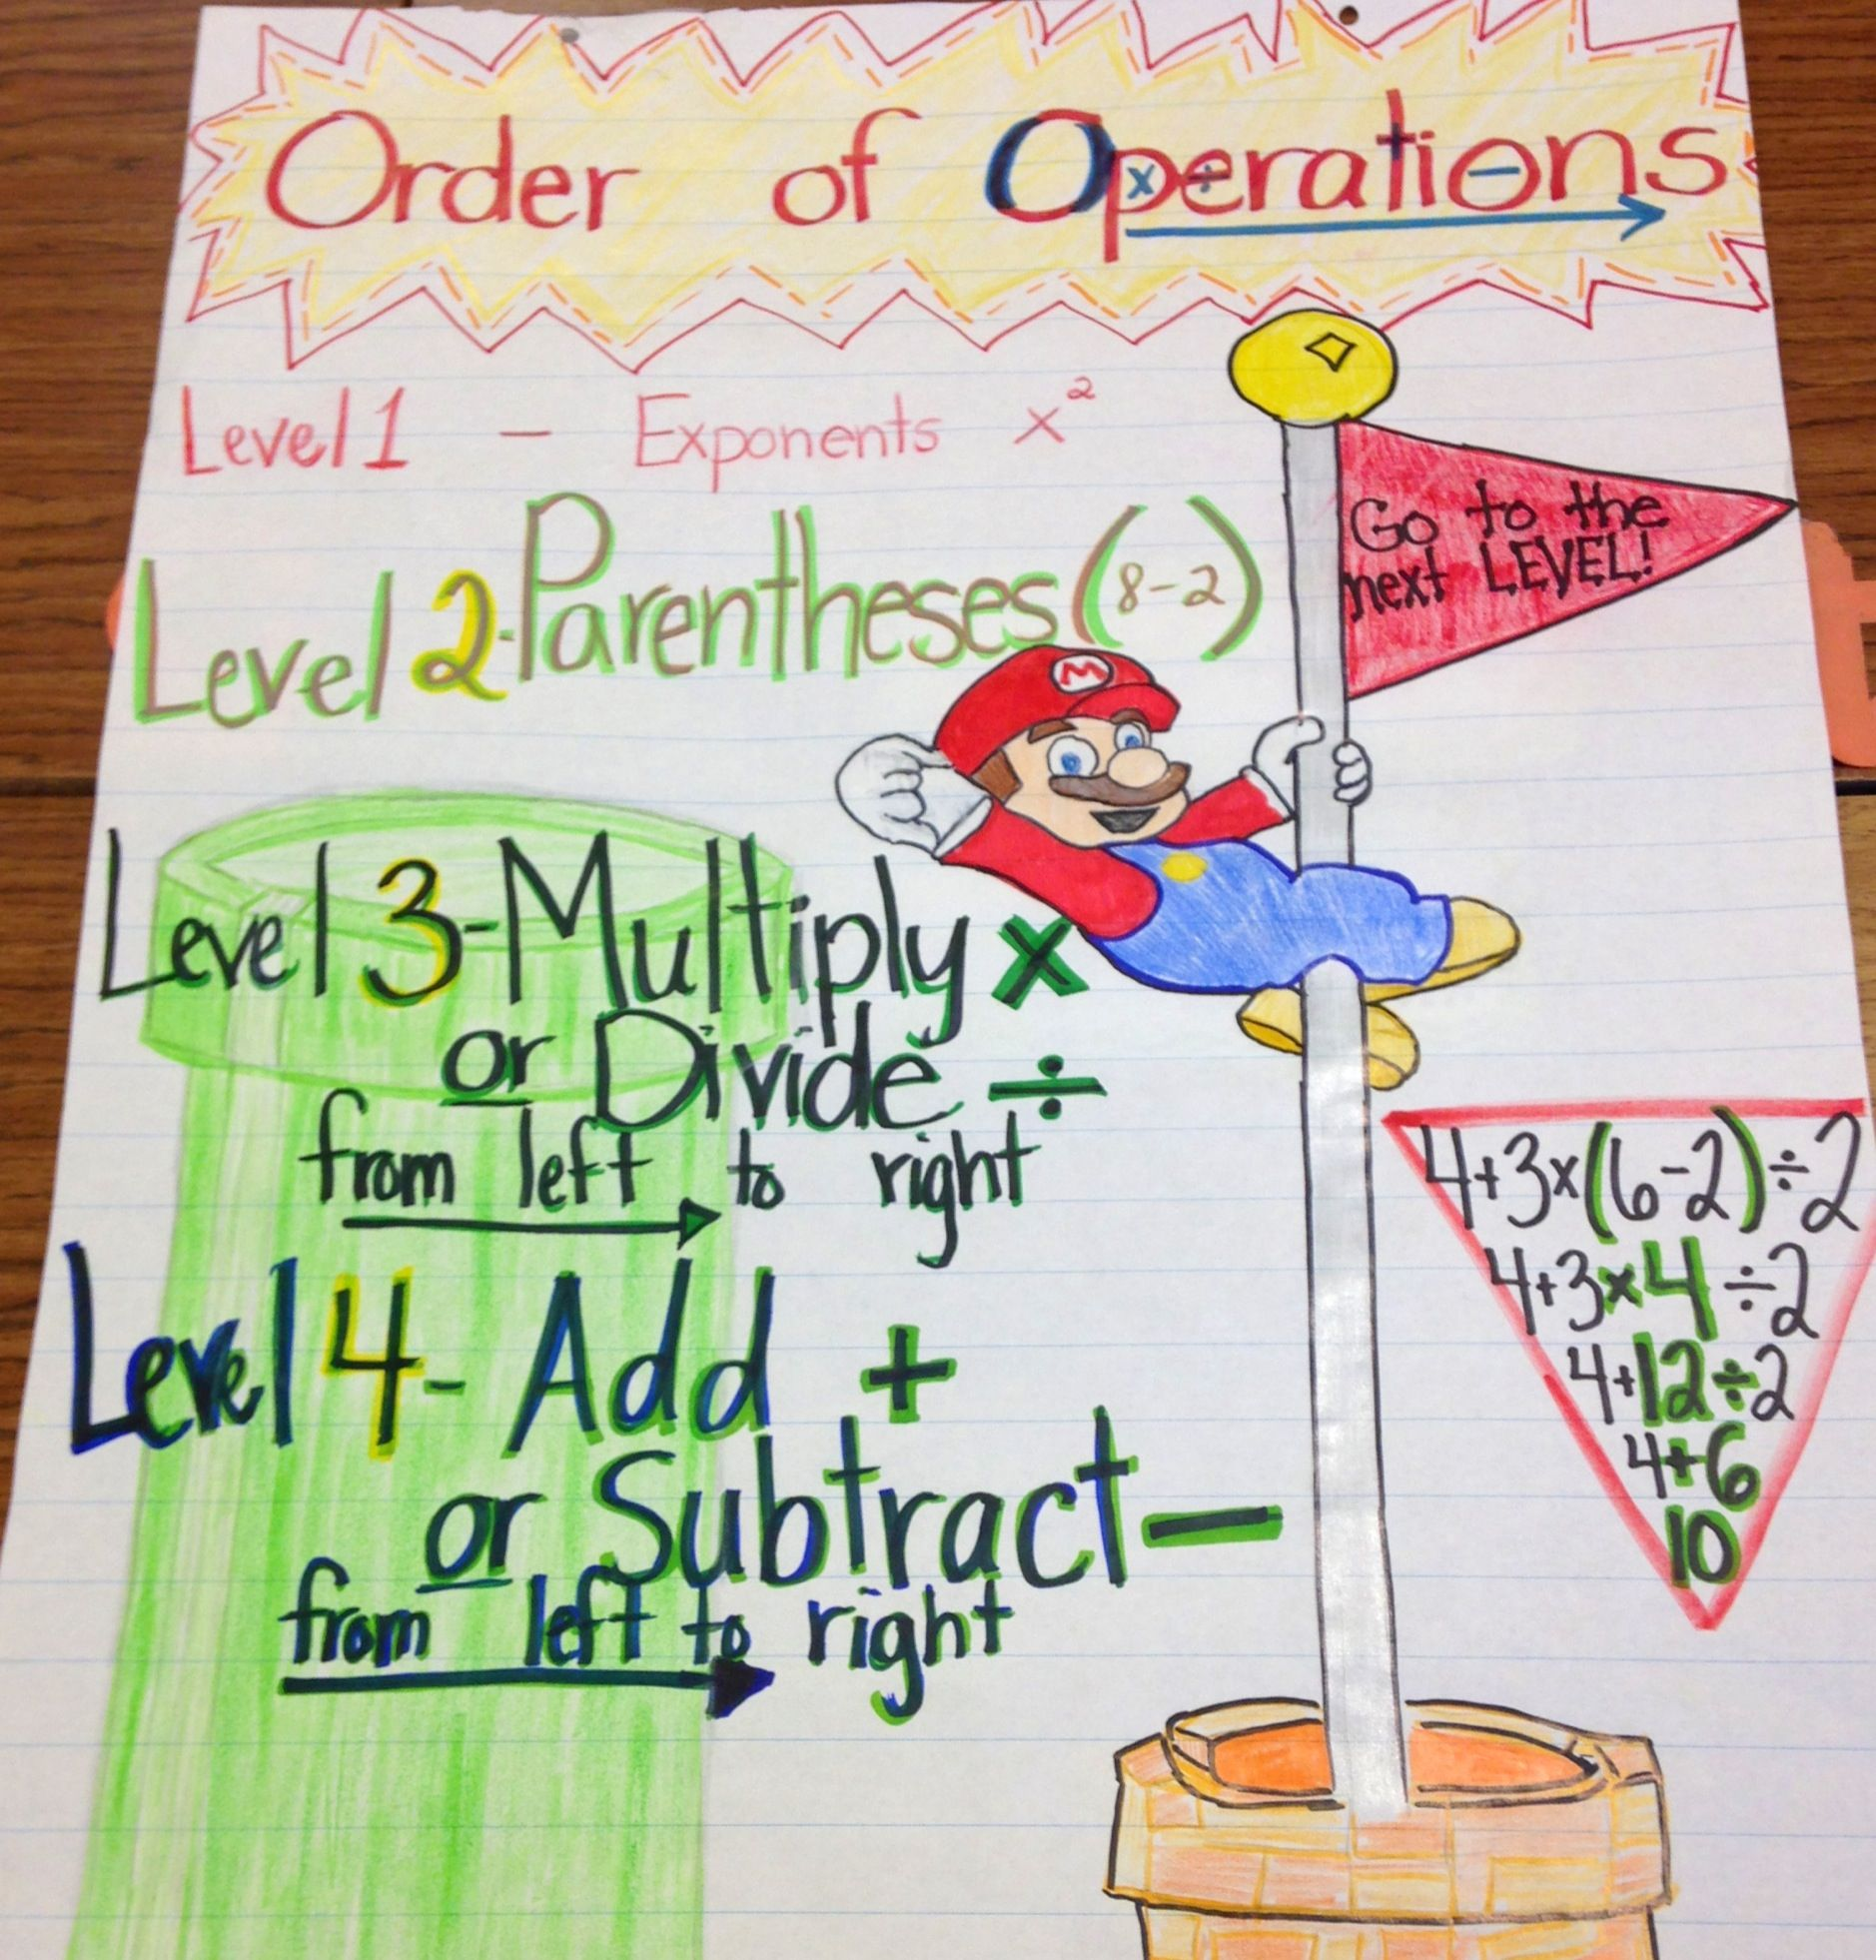 Order Of Operations Anchor Chart I Made This For My Kiddos Using The Levels Rather Then Pemdas